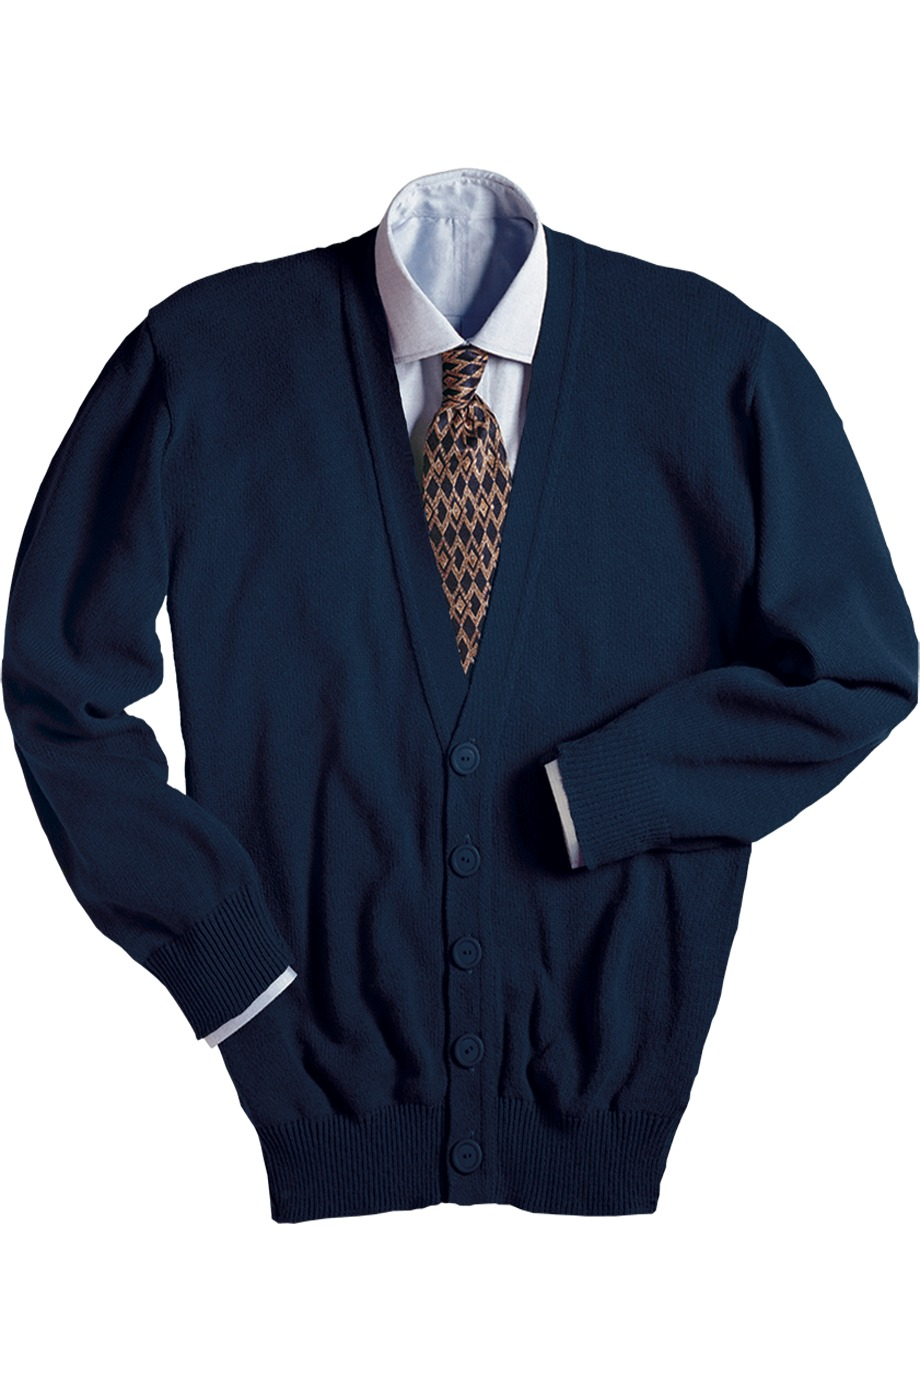 Edwards Garment 351 - V-Neck Cardigan